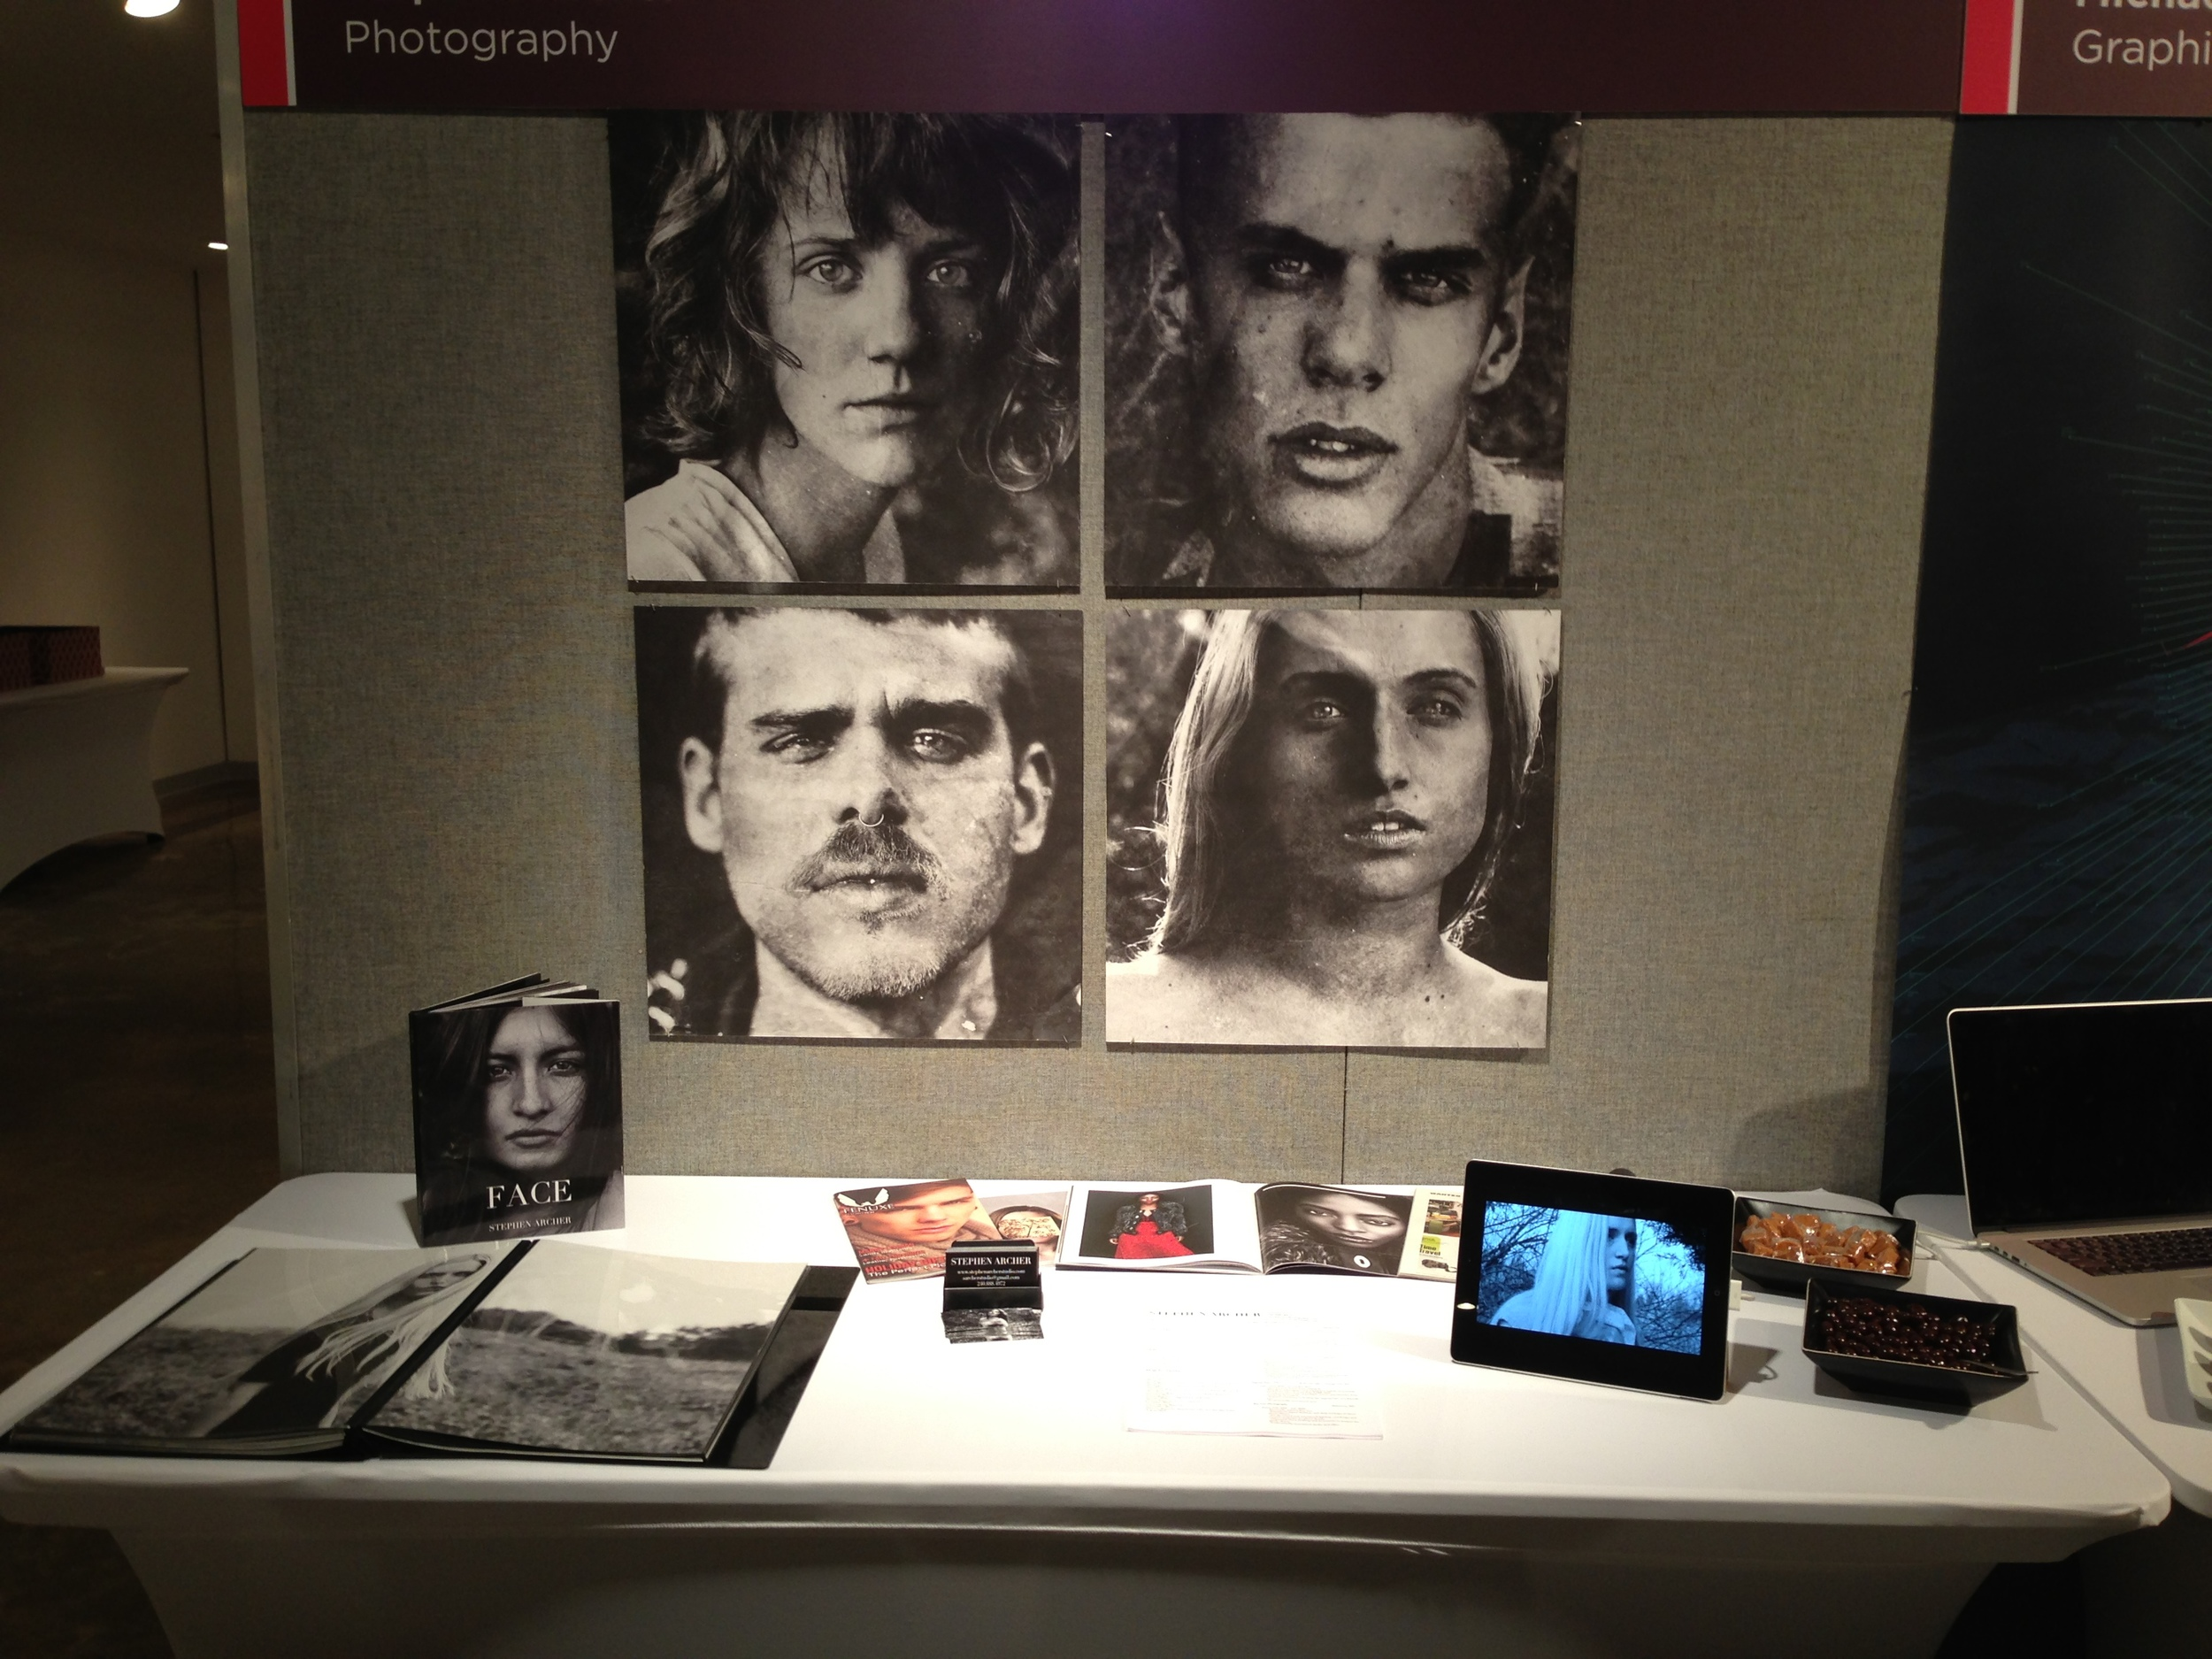 Stephen's booth